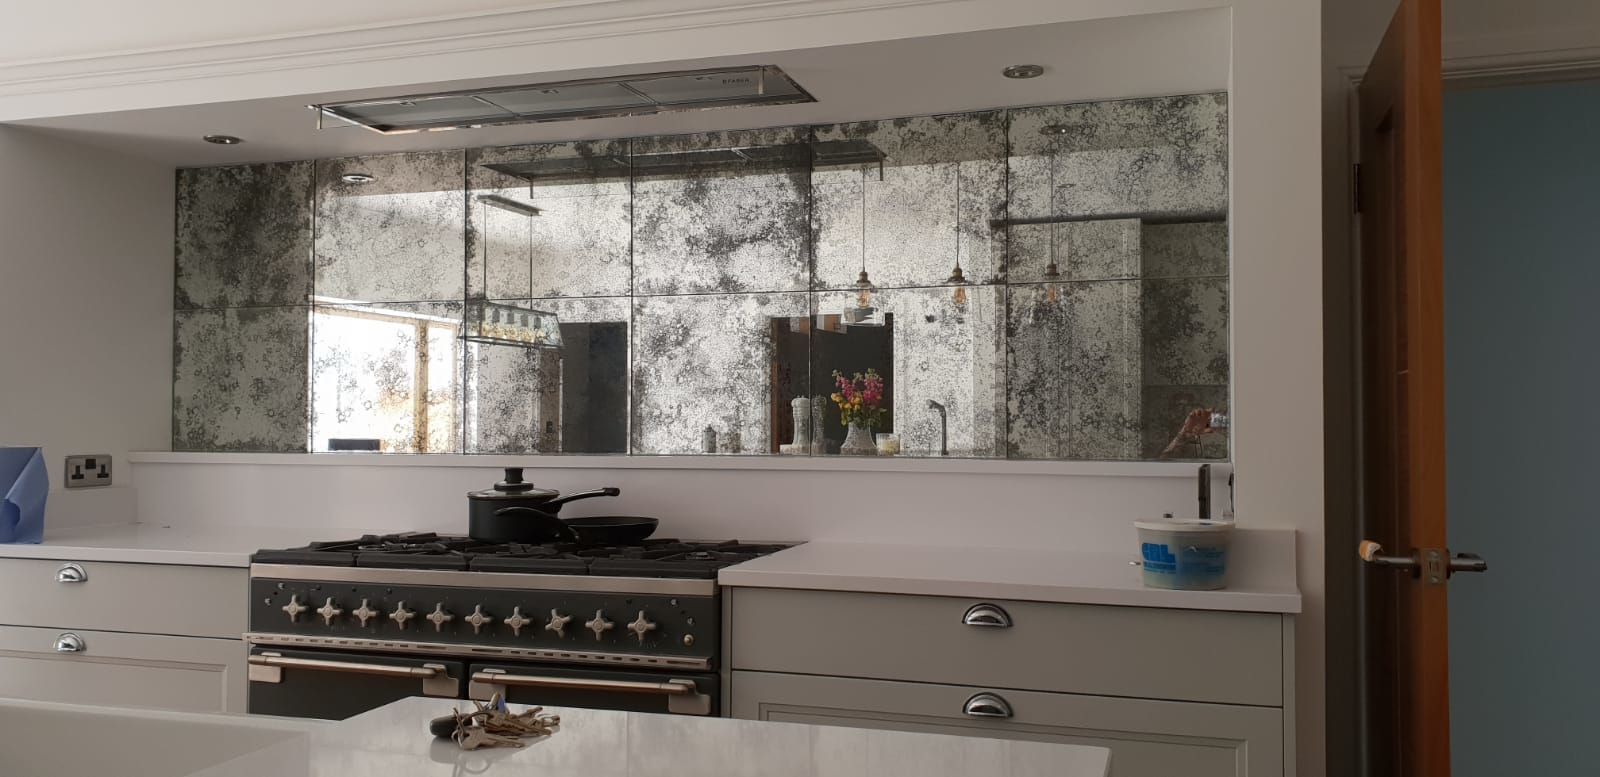 Tiled effect in kitchen